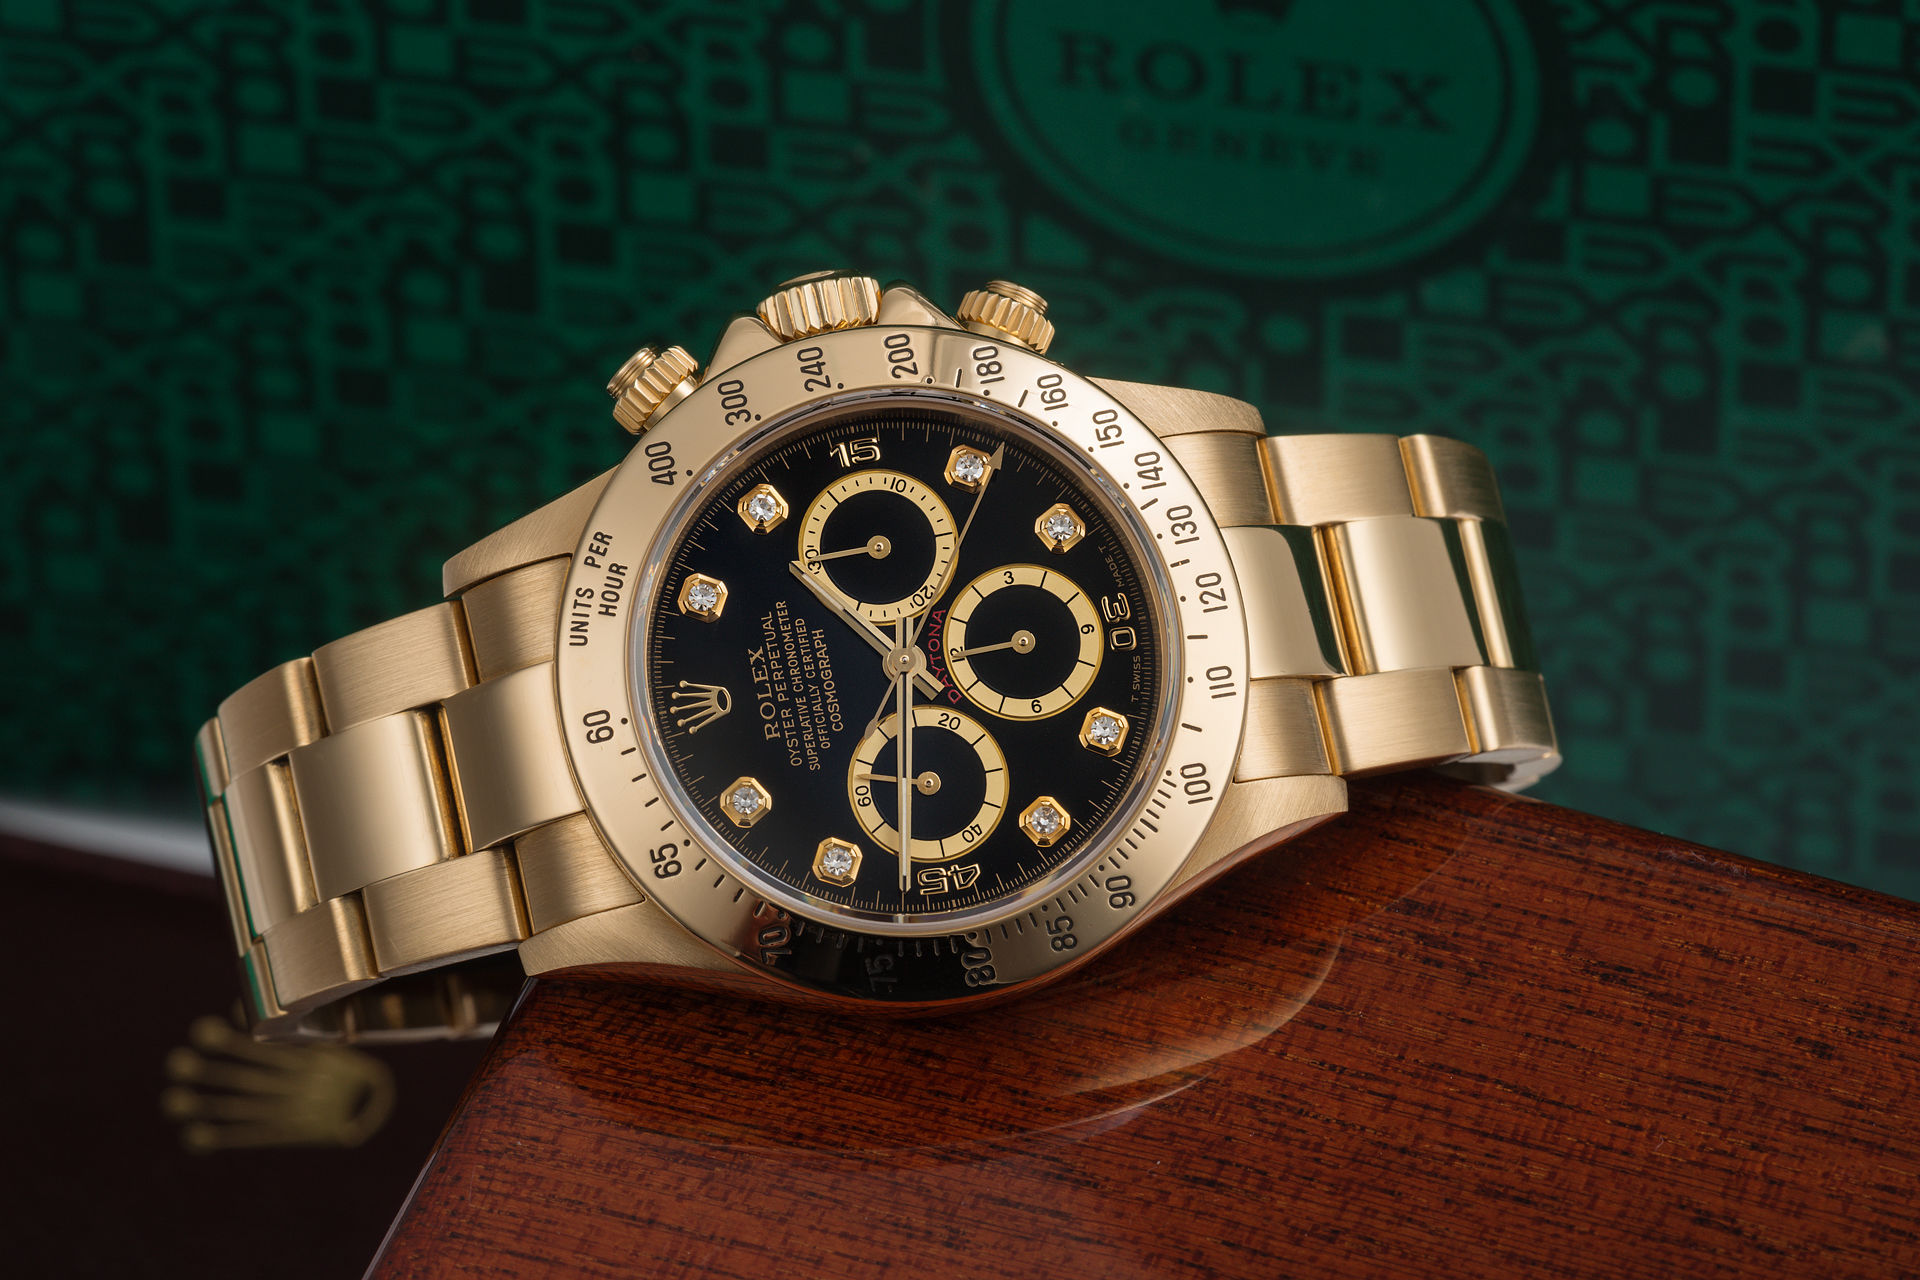 ref 16528 | 18ct Gold Mark IIl 'Full Set' | Rolex Cosmograph Daytona